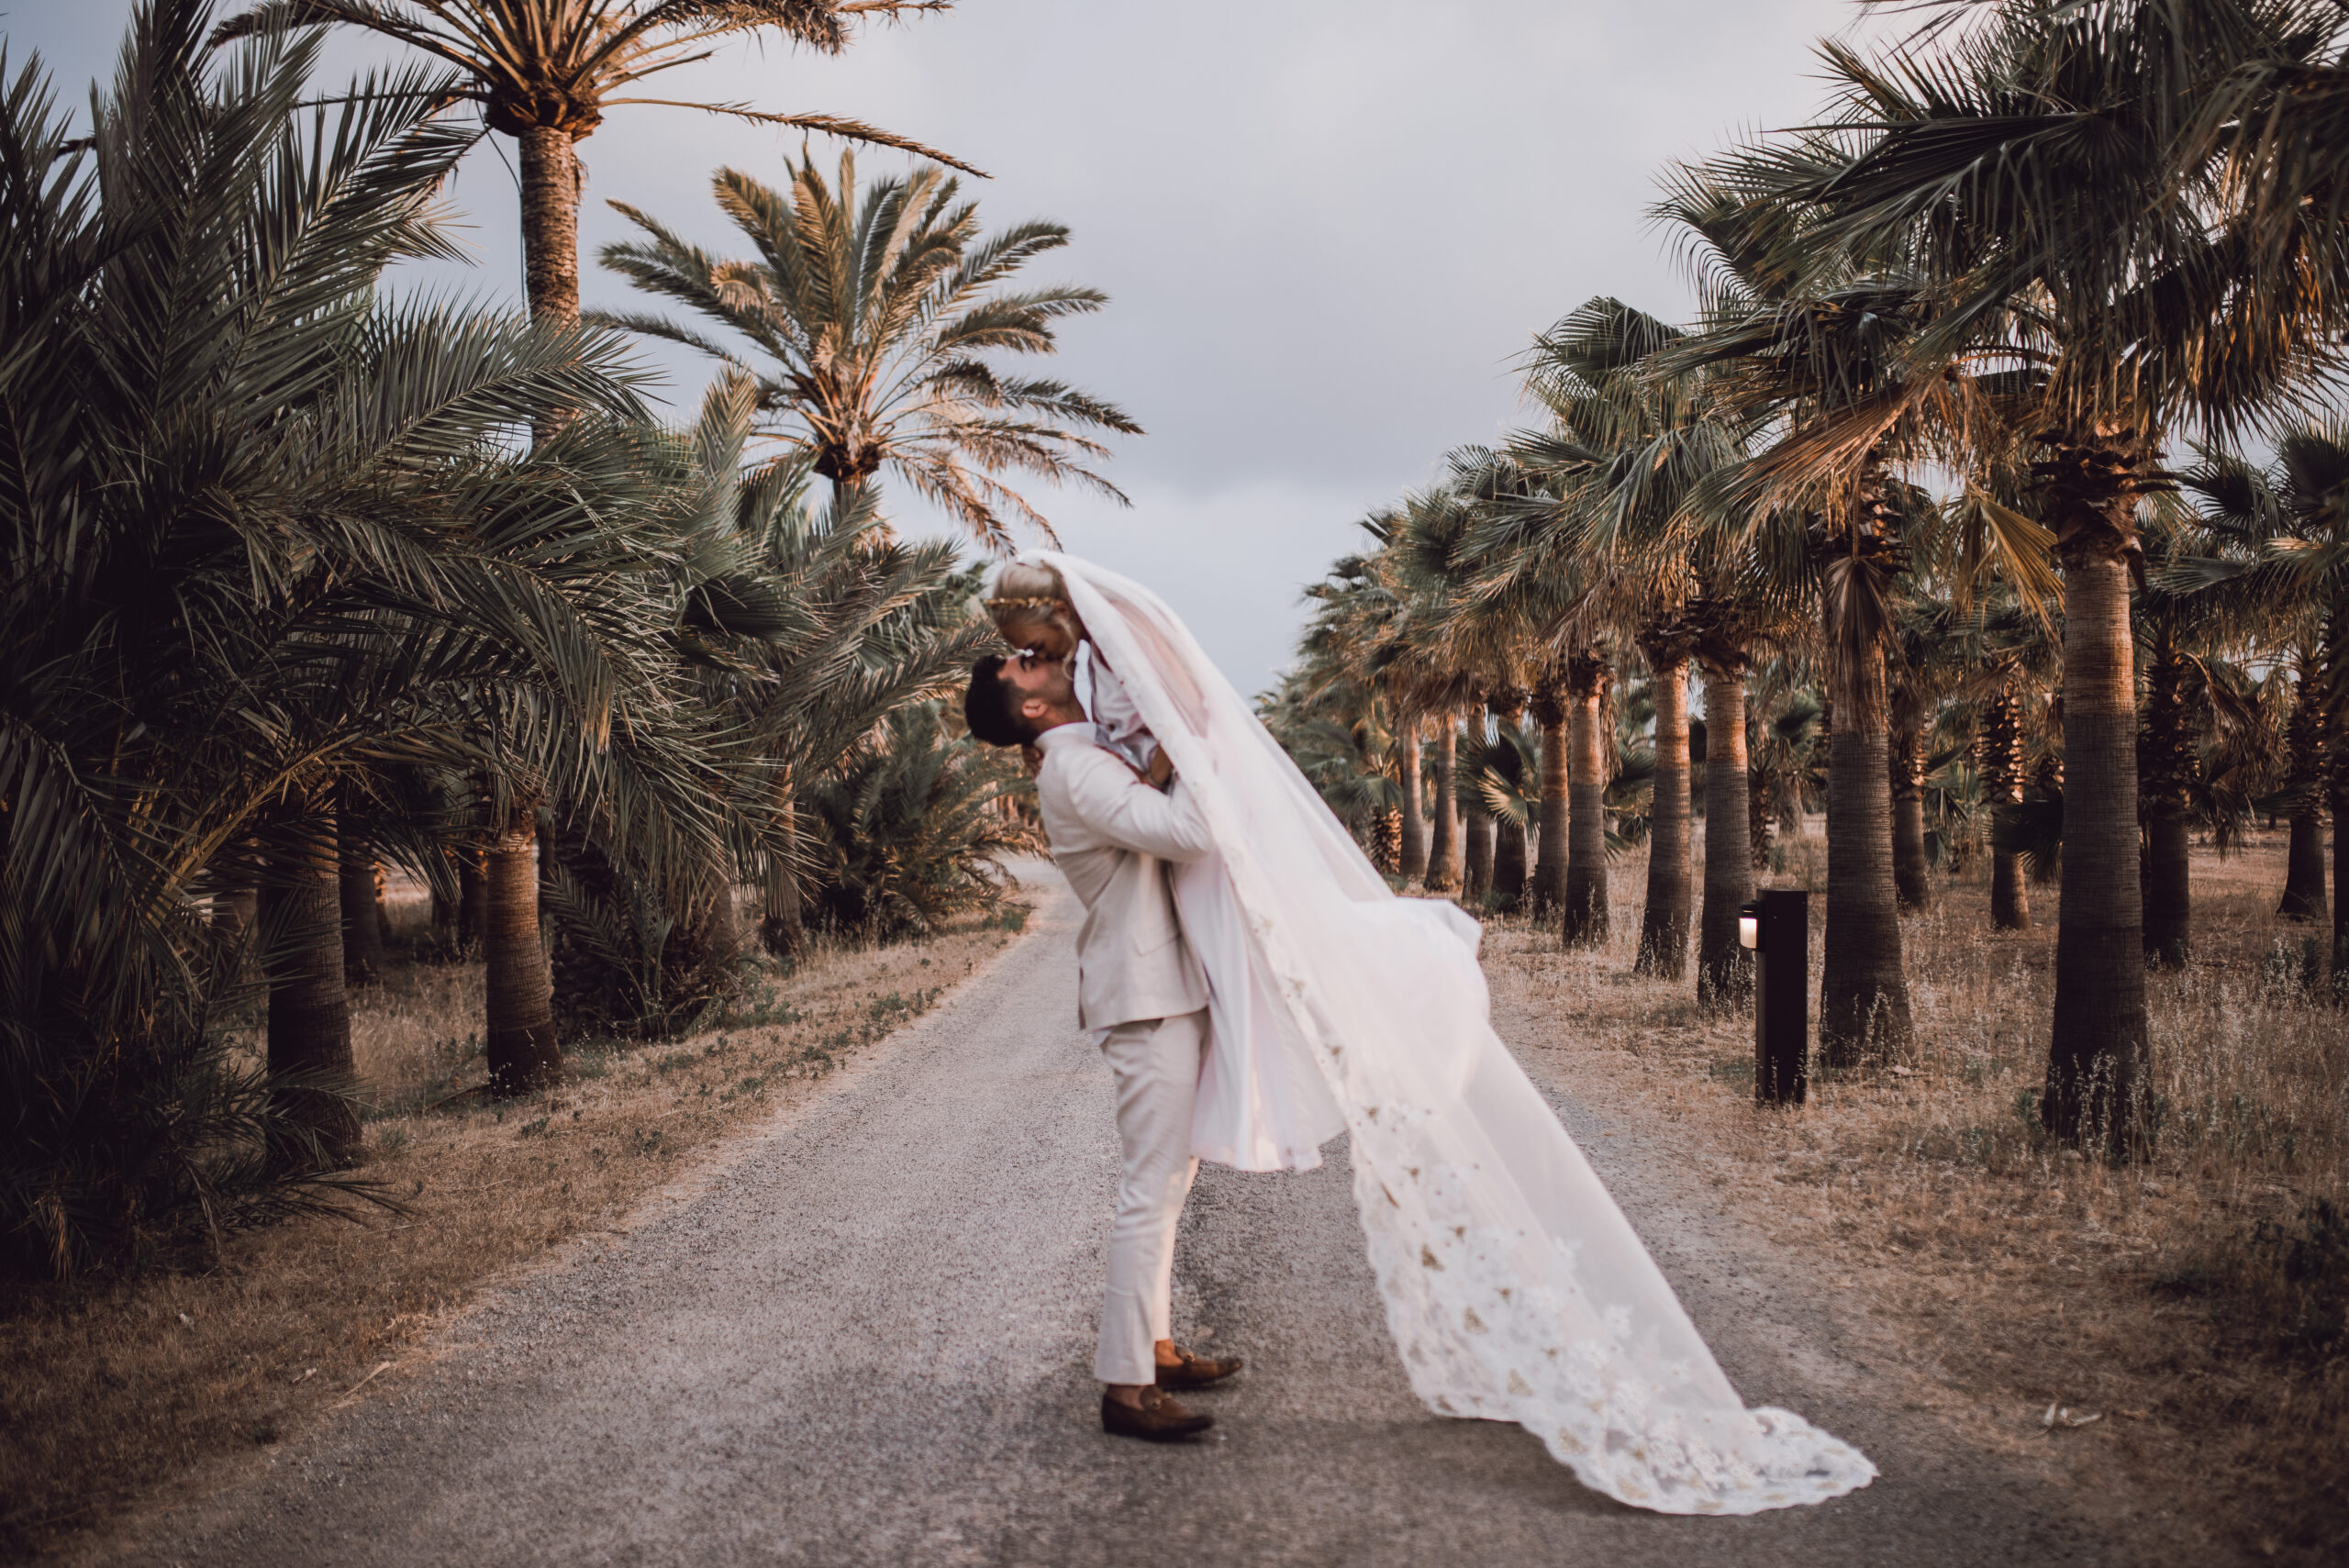 The groom lifts his bride on the sweeping driveway of the Finca - Rebecca Jackson Photography